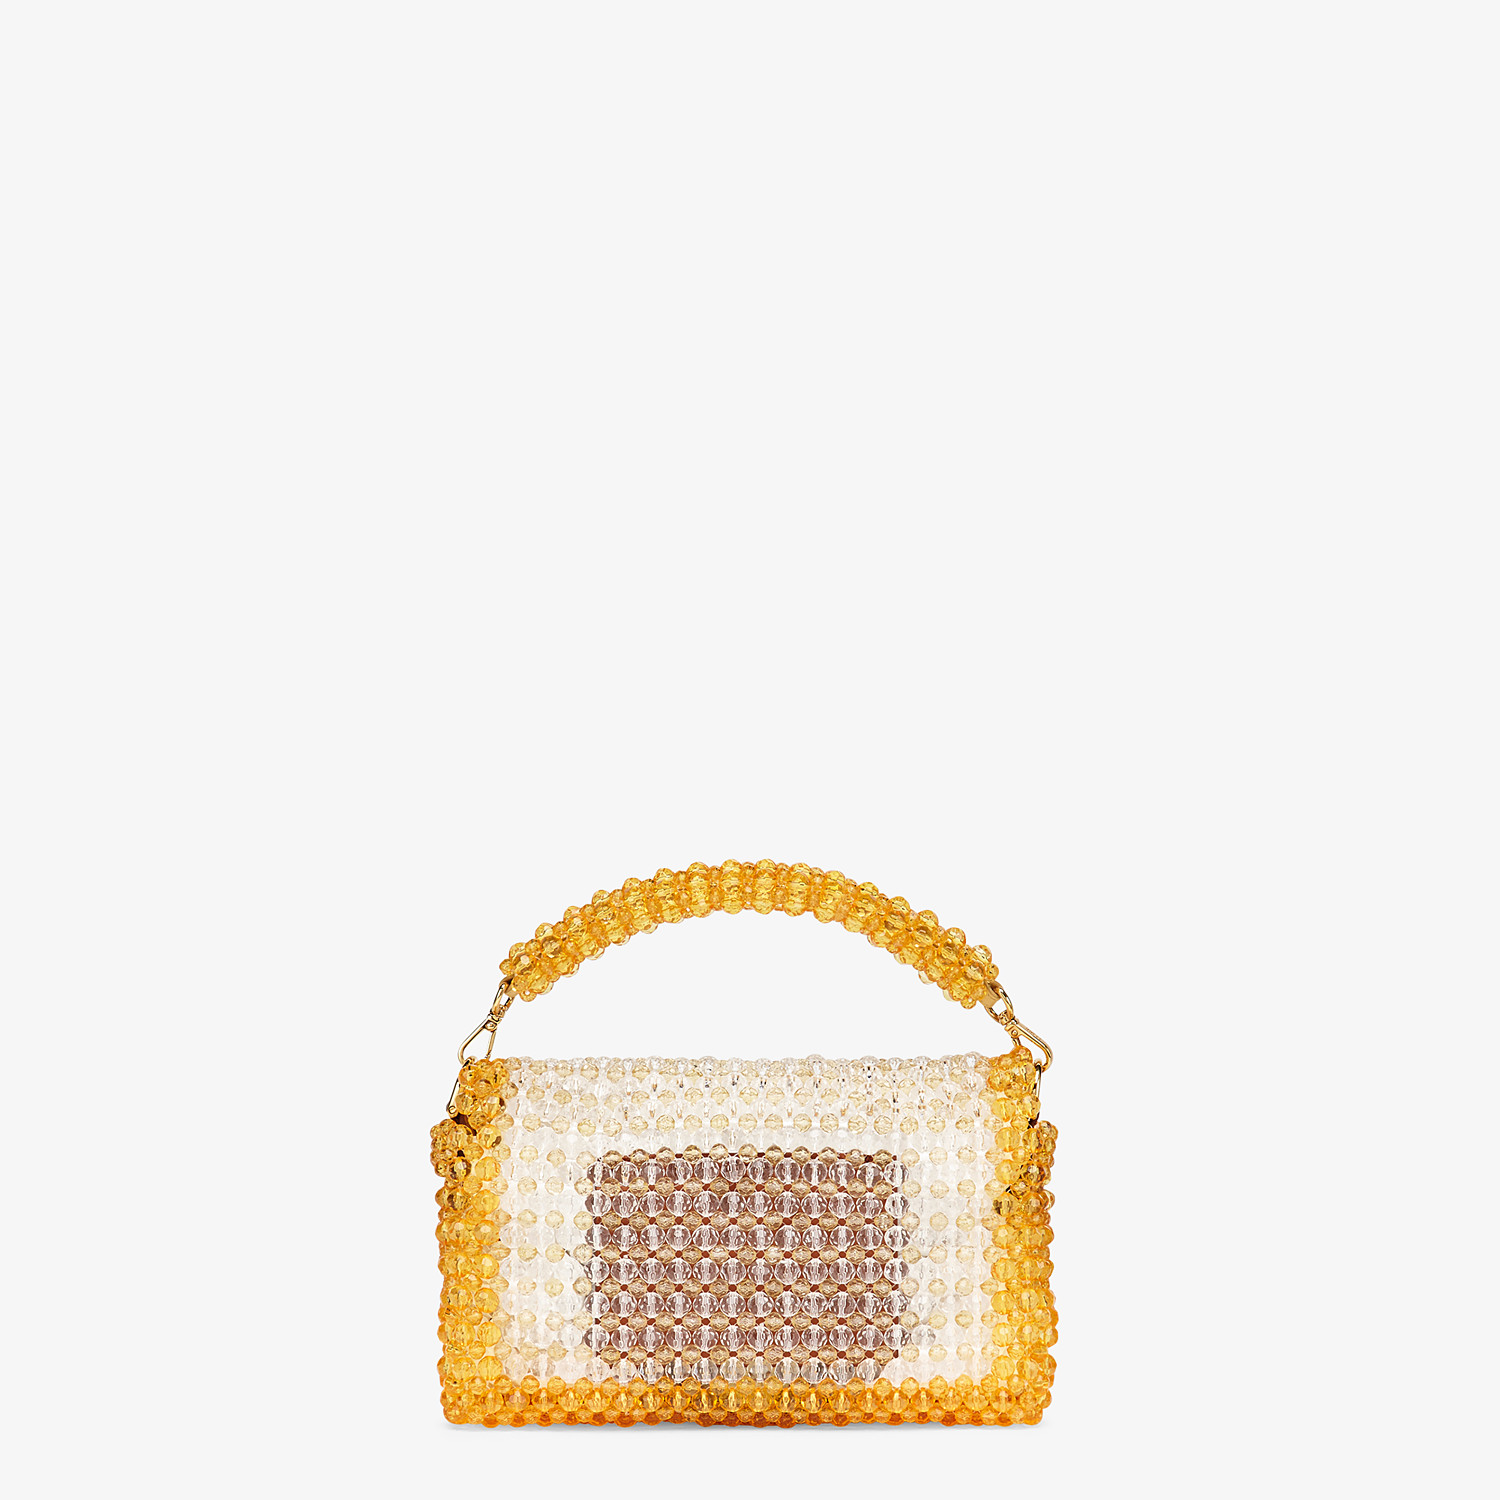 FENDI BAGUETTE - Bag with yellow beads - view 3 detail